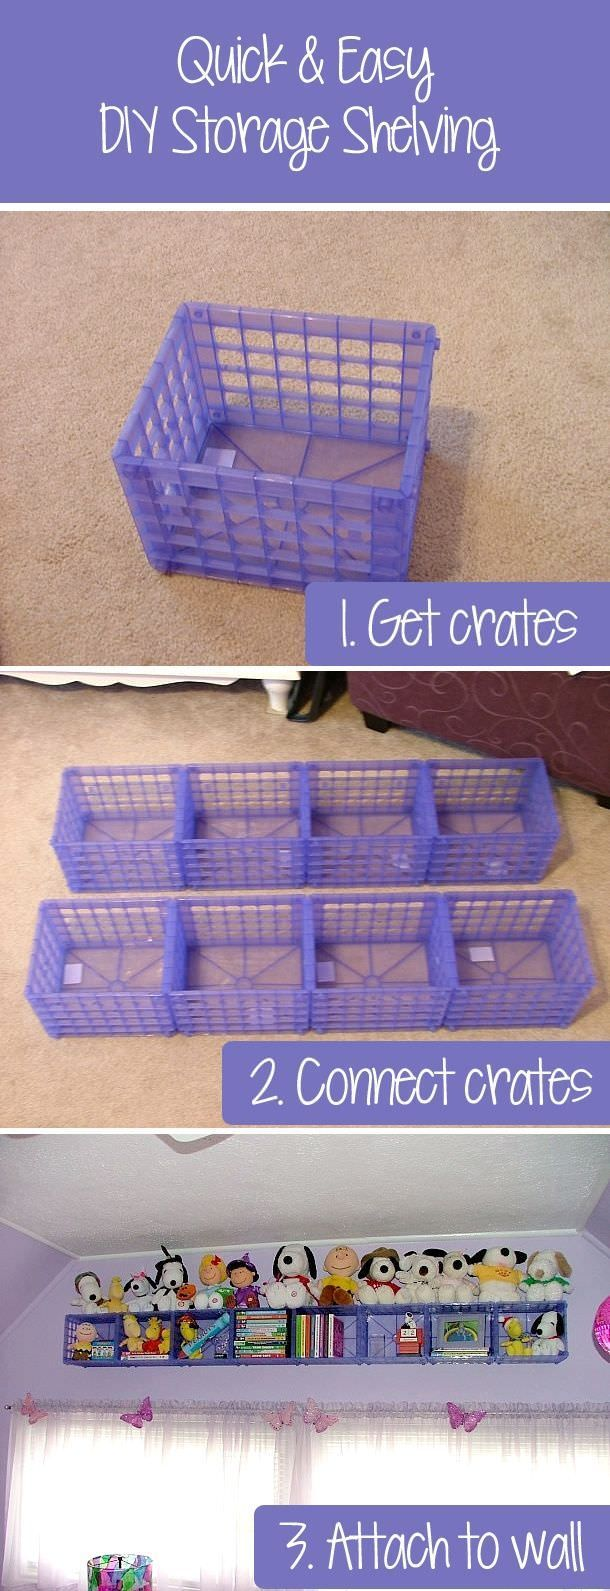 Storage For The Ever Expanding Soft Toy Population.   Playrooms U0026 Playtime    Pinterest   Storage, Toy And Room